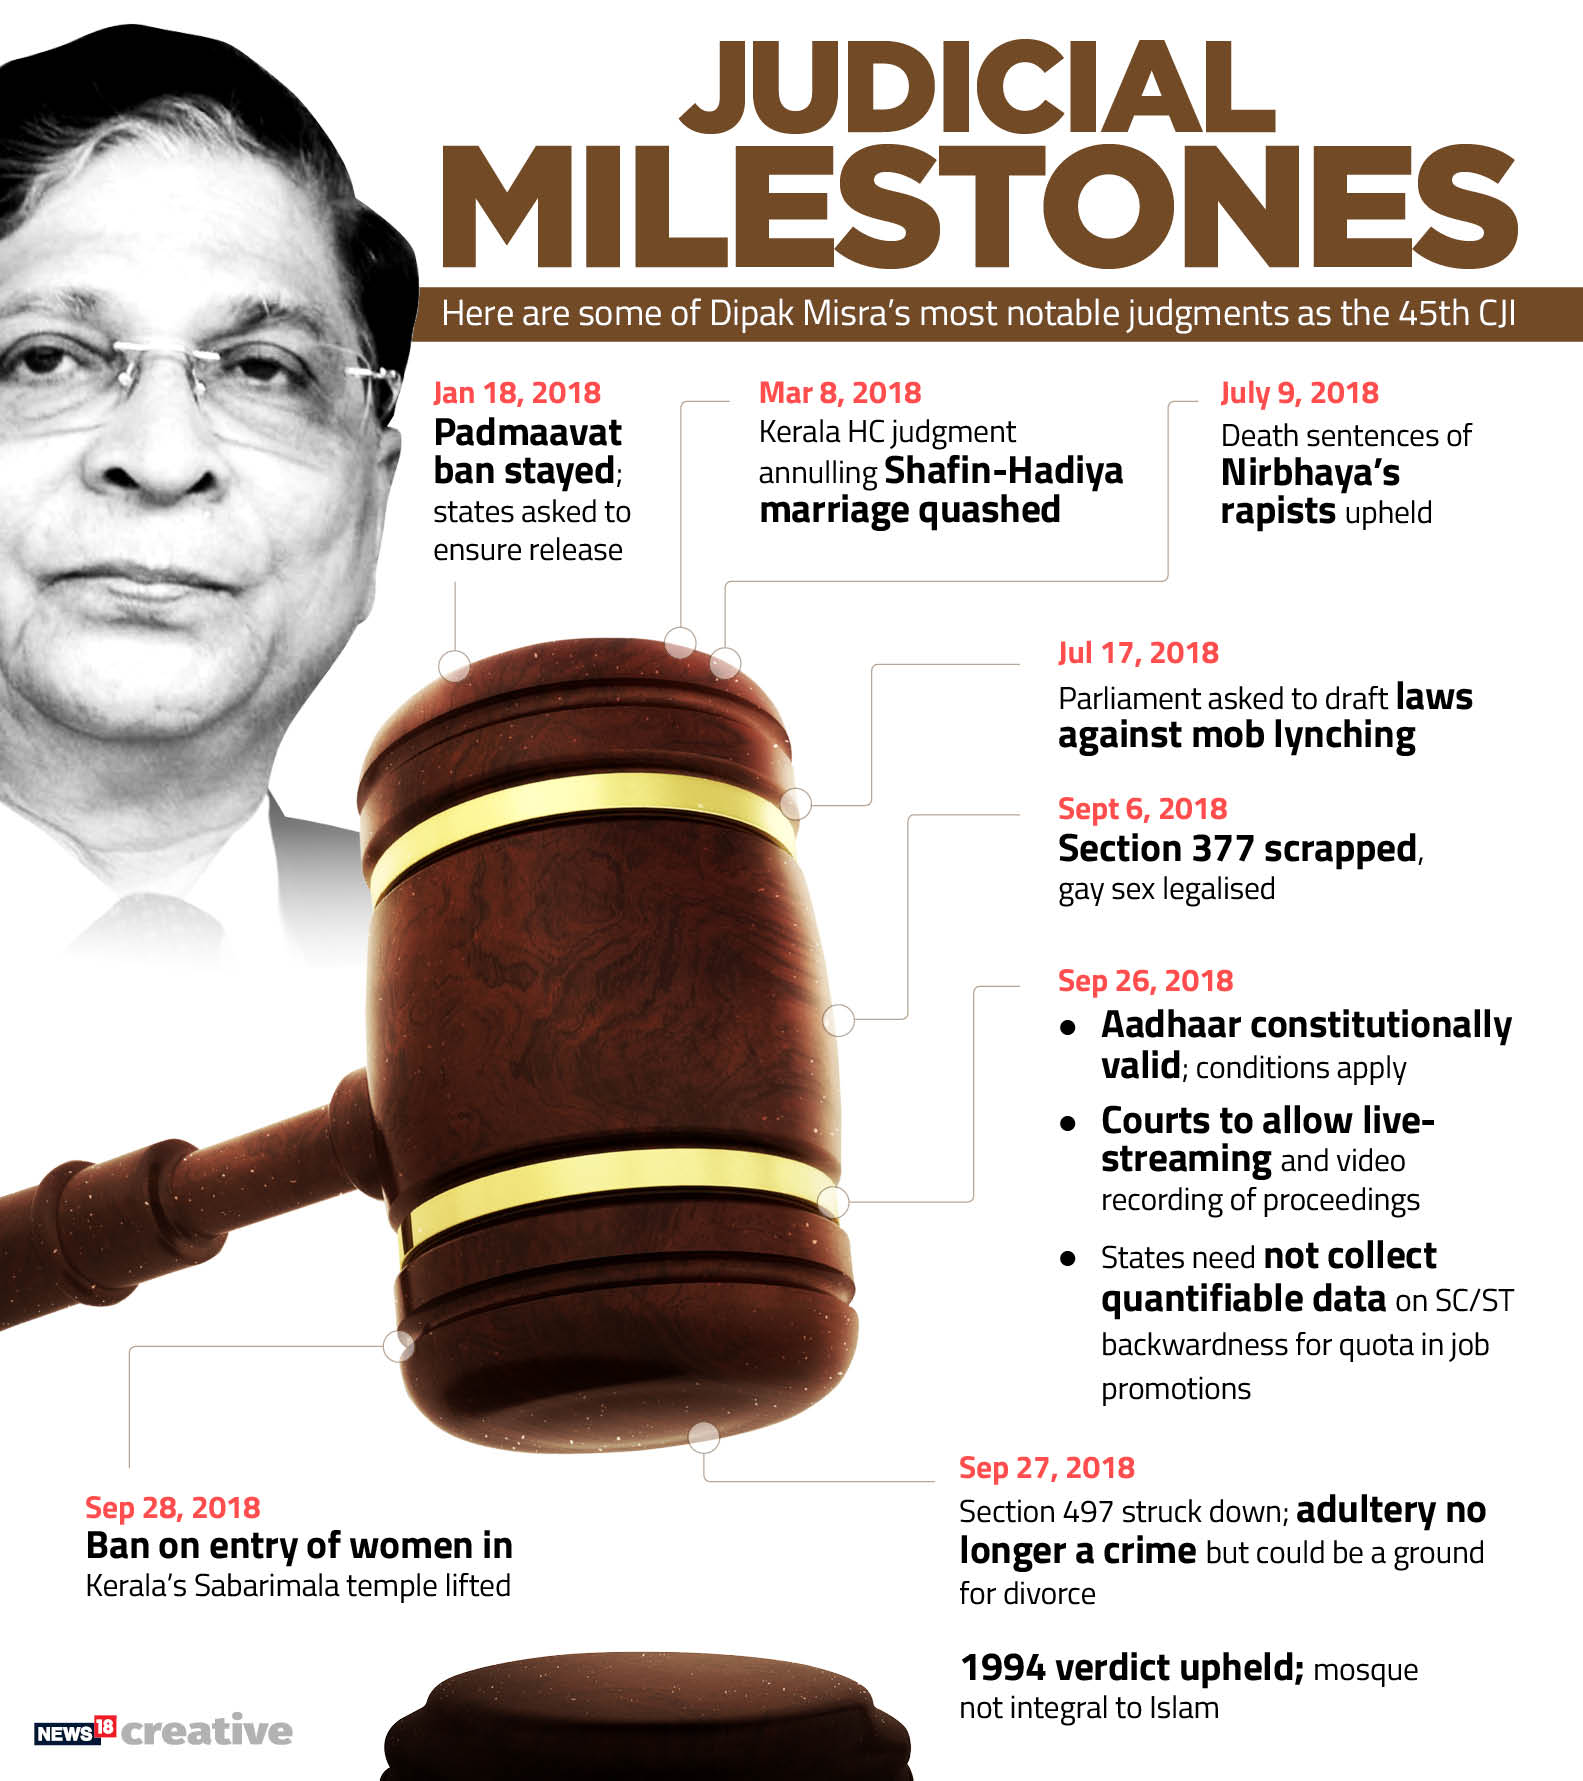 Dipak Misra Judgments